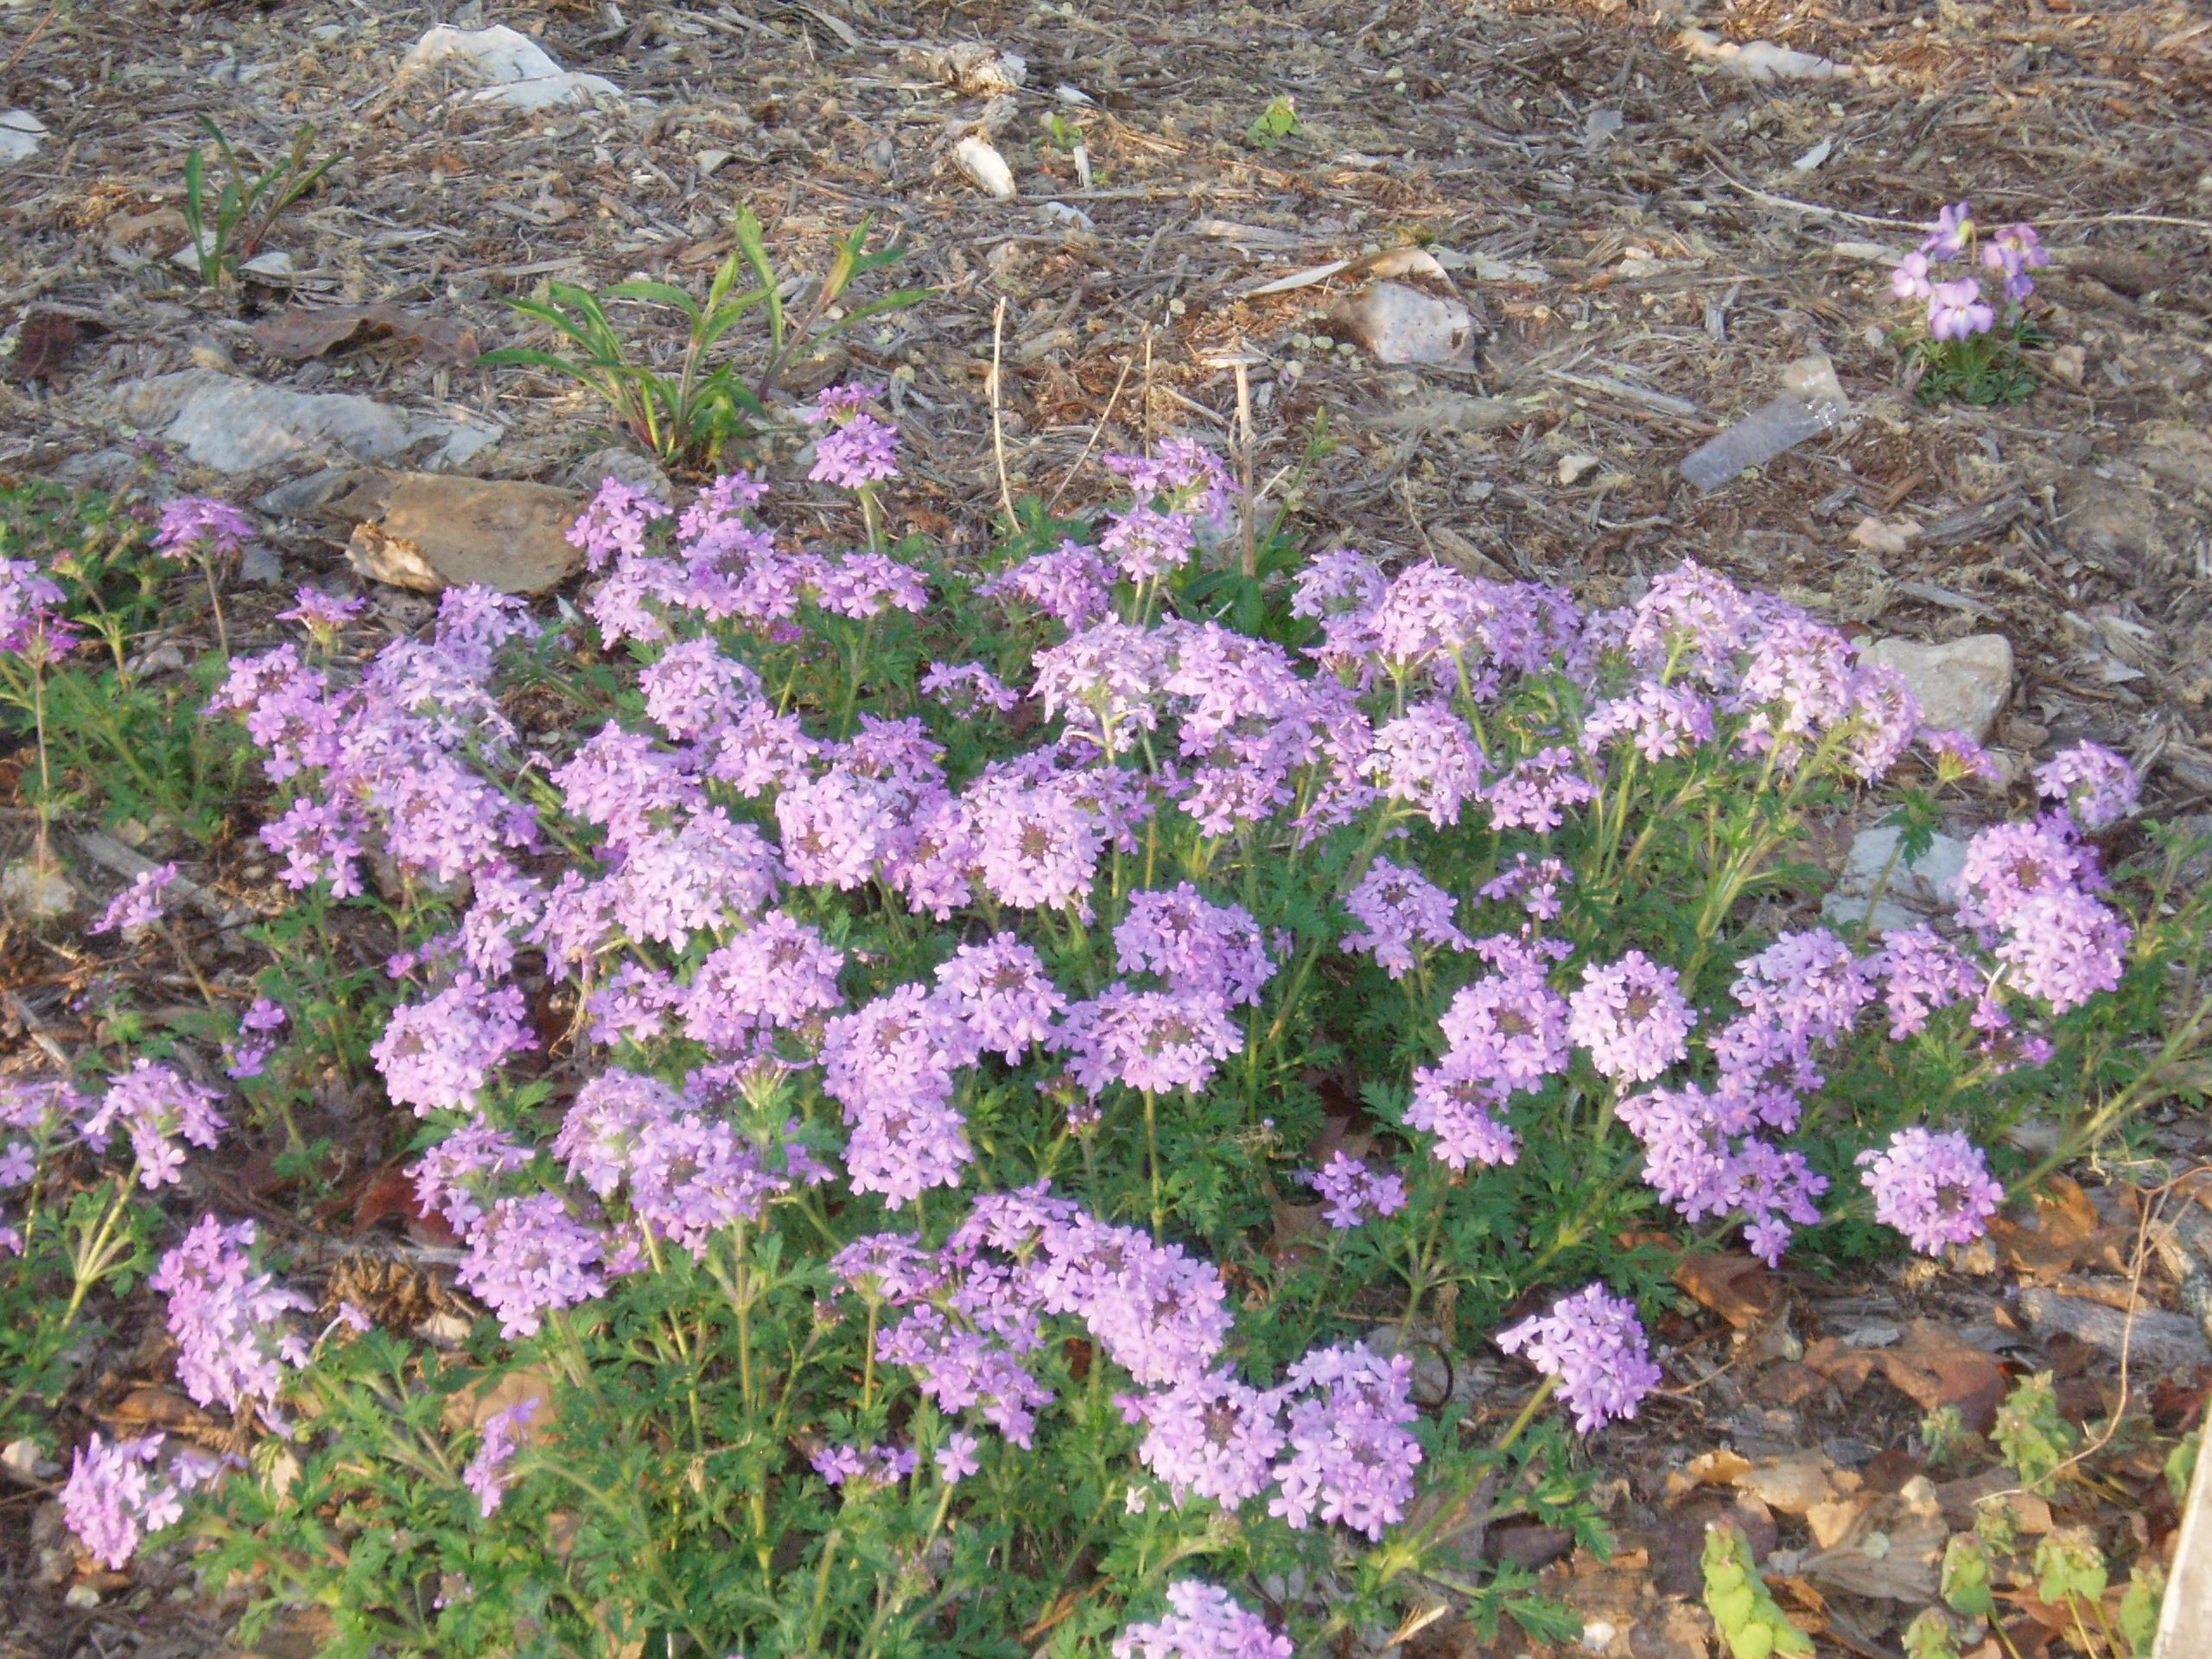 "{""blocks"":[{""key"":""ejd8u"",""text"":"" Glandularia canaden (Verbena canadensis) Rose Vervain - potted plants  john@easywildflowers.com "",""type"":""unstyled"",""depth"":0,""inlineStyleRanges"":[],""entityRanges"":[],""data"":{}}],""entityMap"":{}}"